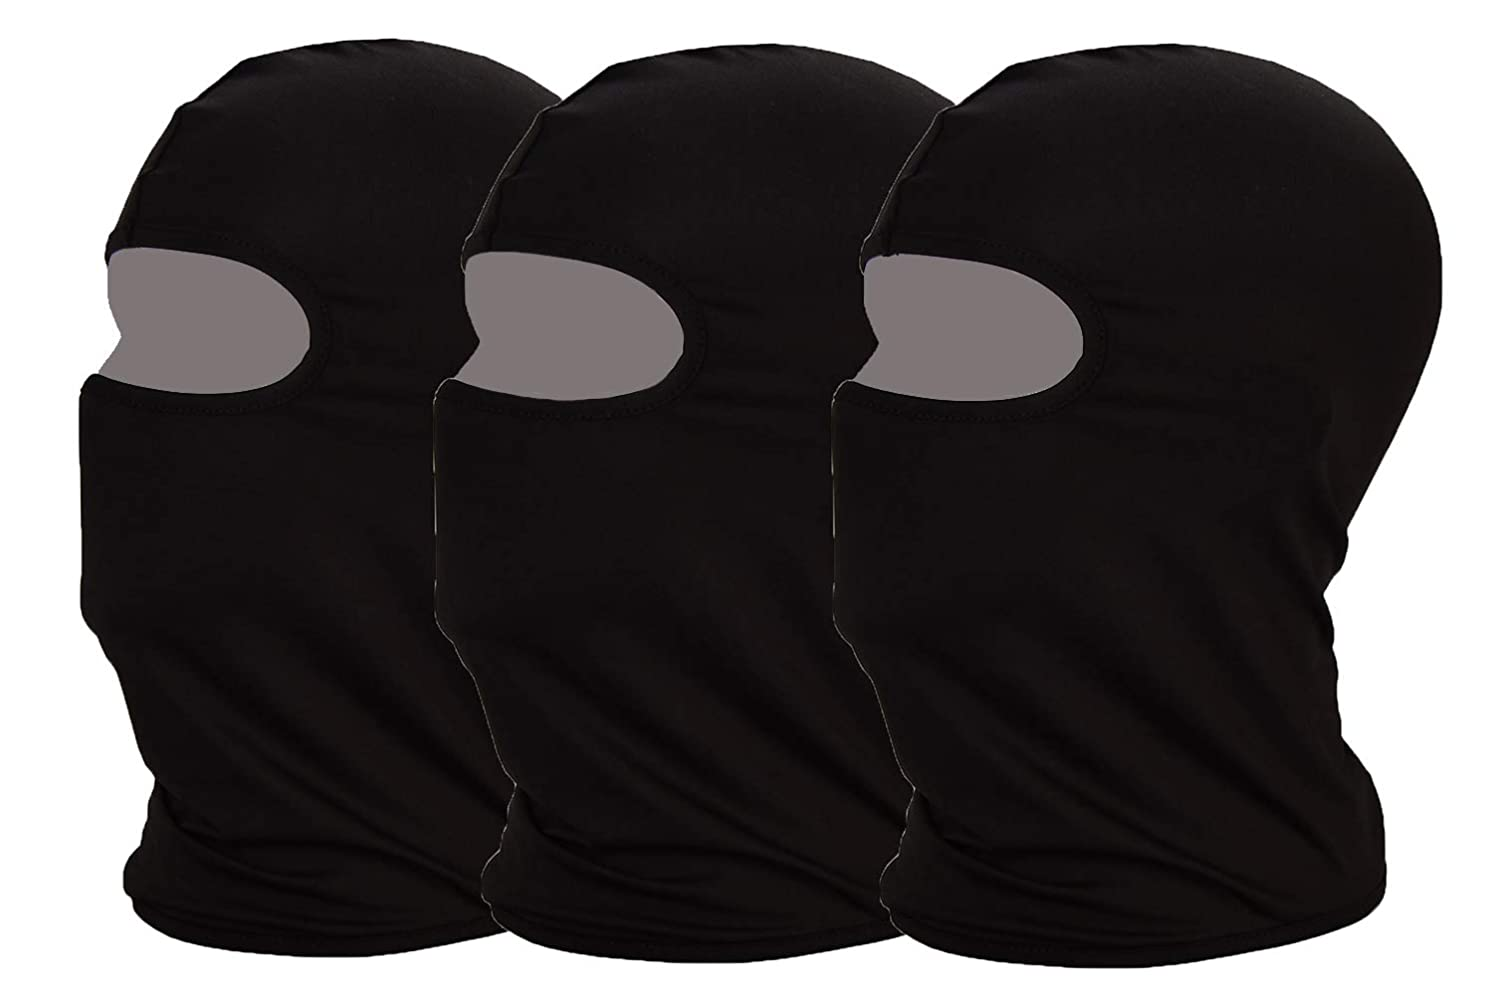 MAYOUTH UV protection Balaclava Cycling Face Mask Light Thin Lycra Fabric Windproof Breathable Sports Outdoor Full Face Mask 3-pack (Black 3-pack)